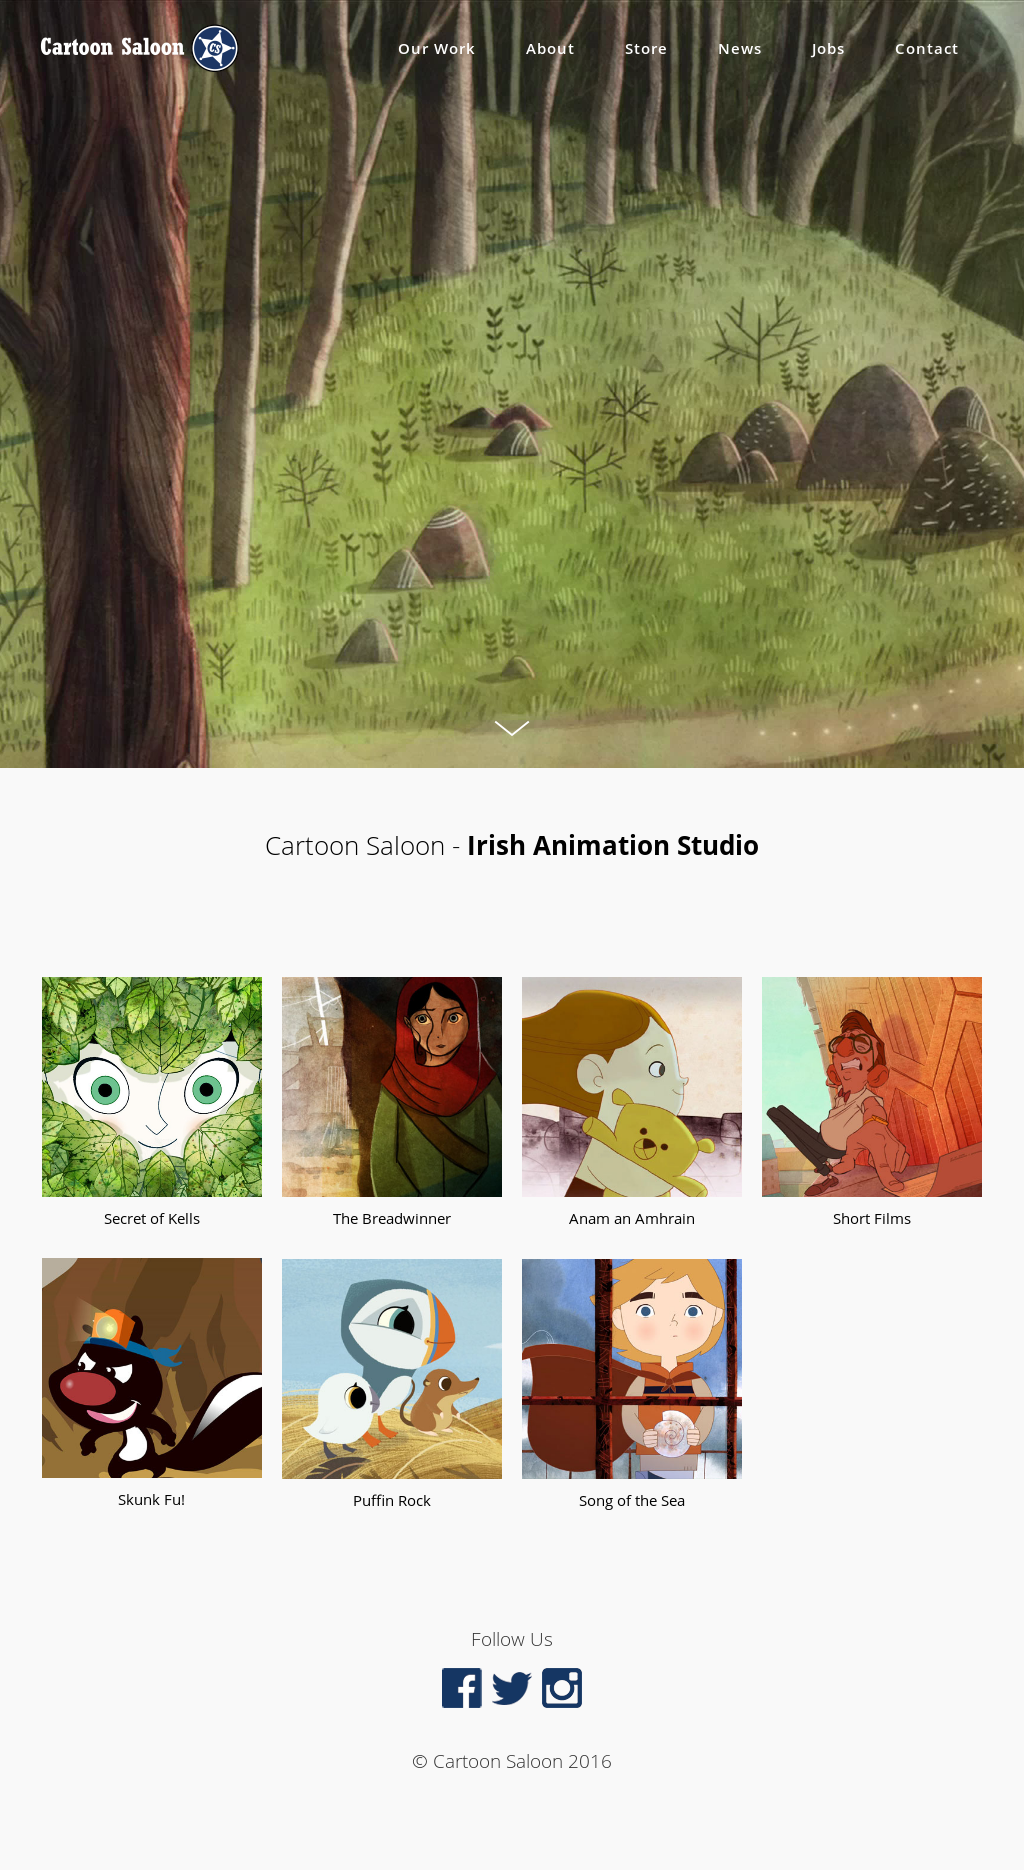 Cartoonsaloon Competitors, Revenue and Employees - Owler